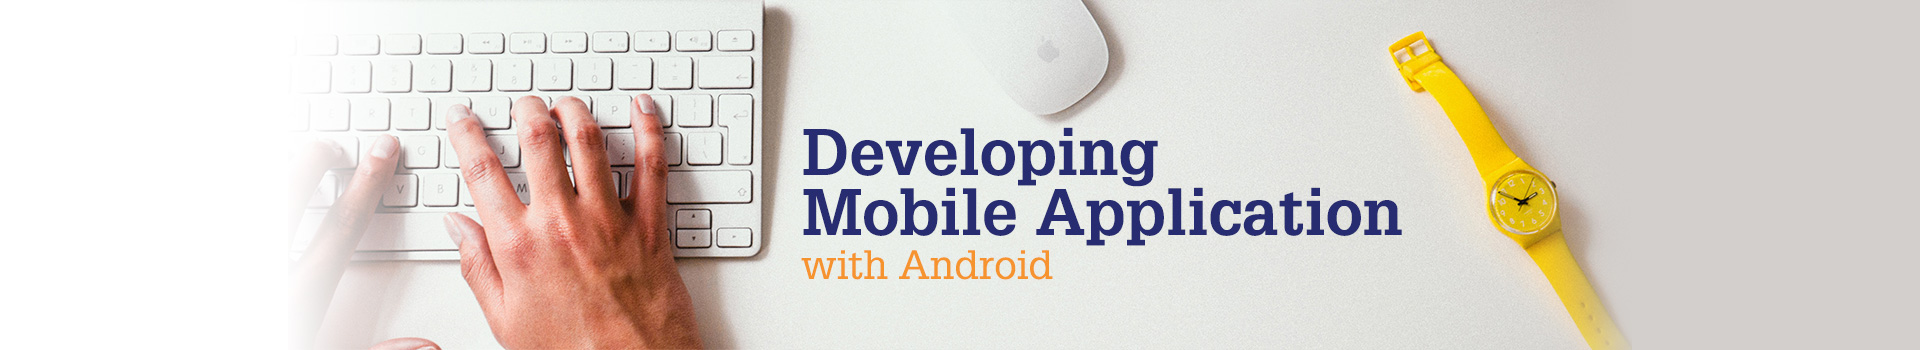 Developing Mobile Application